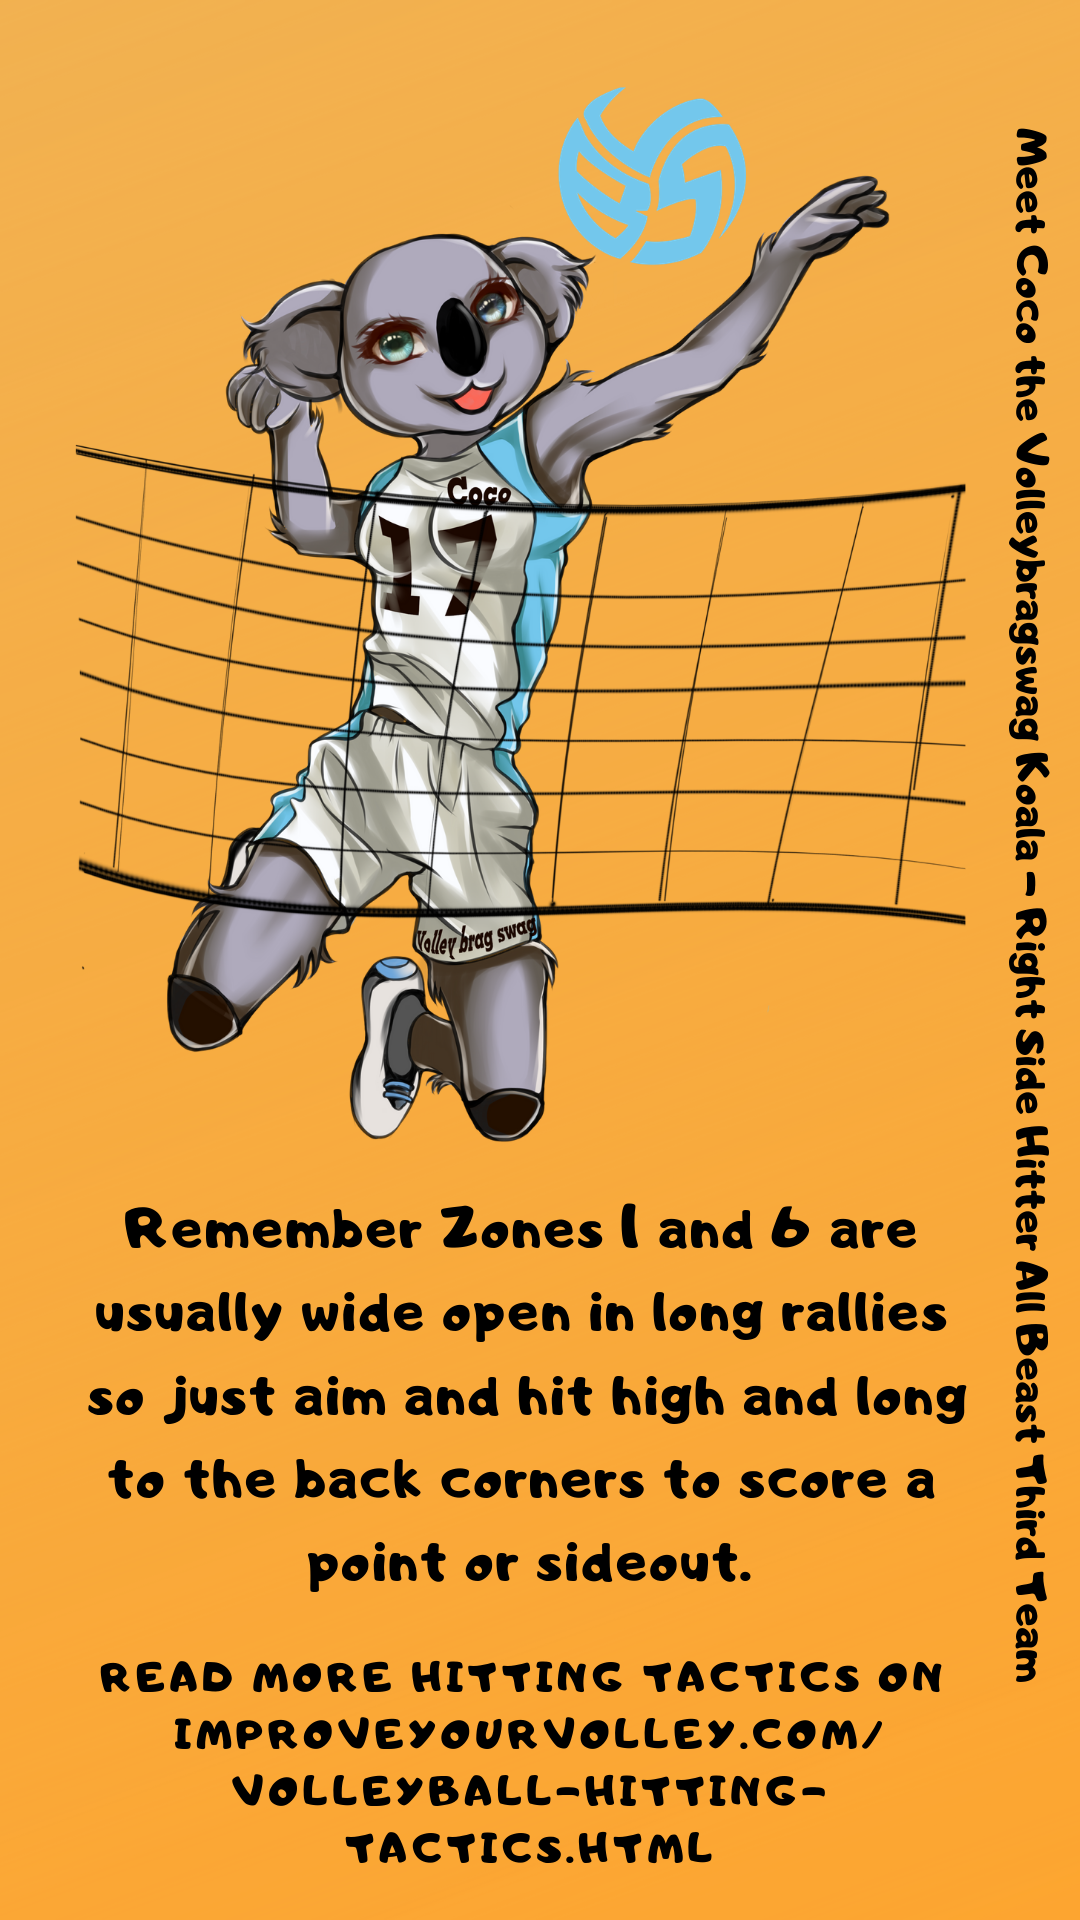 Hitting Tactics: Remember Zones 1 and 6 tend to be wide open during long rallies.